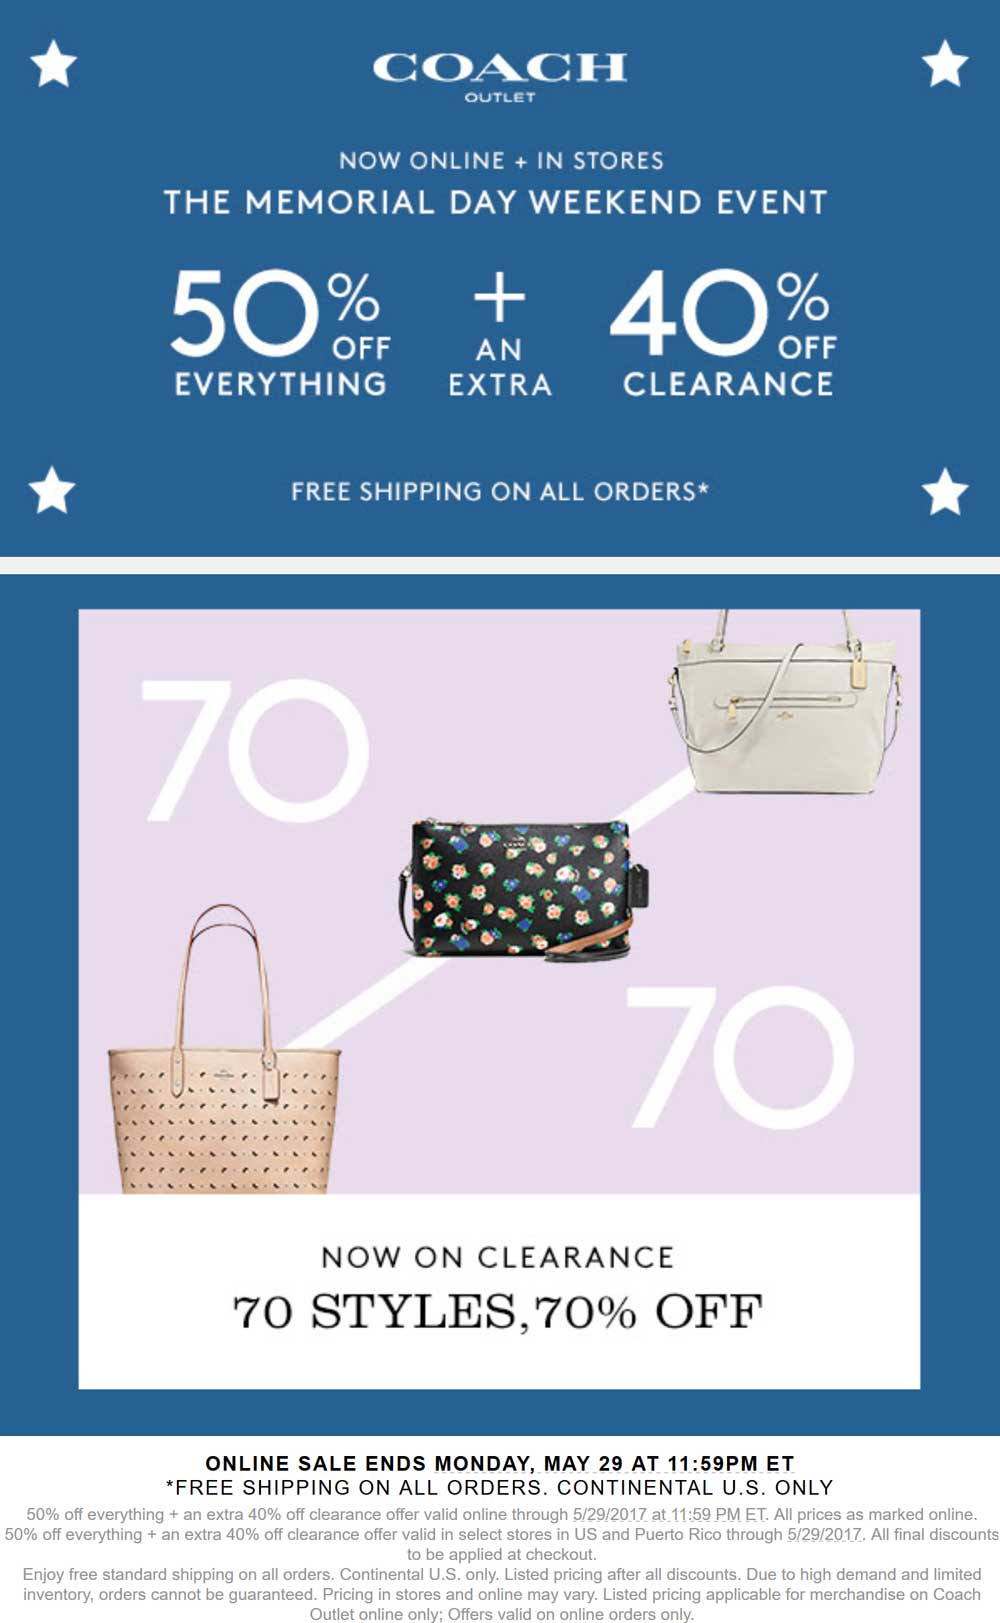 coach outlet promo code for free shipping